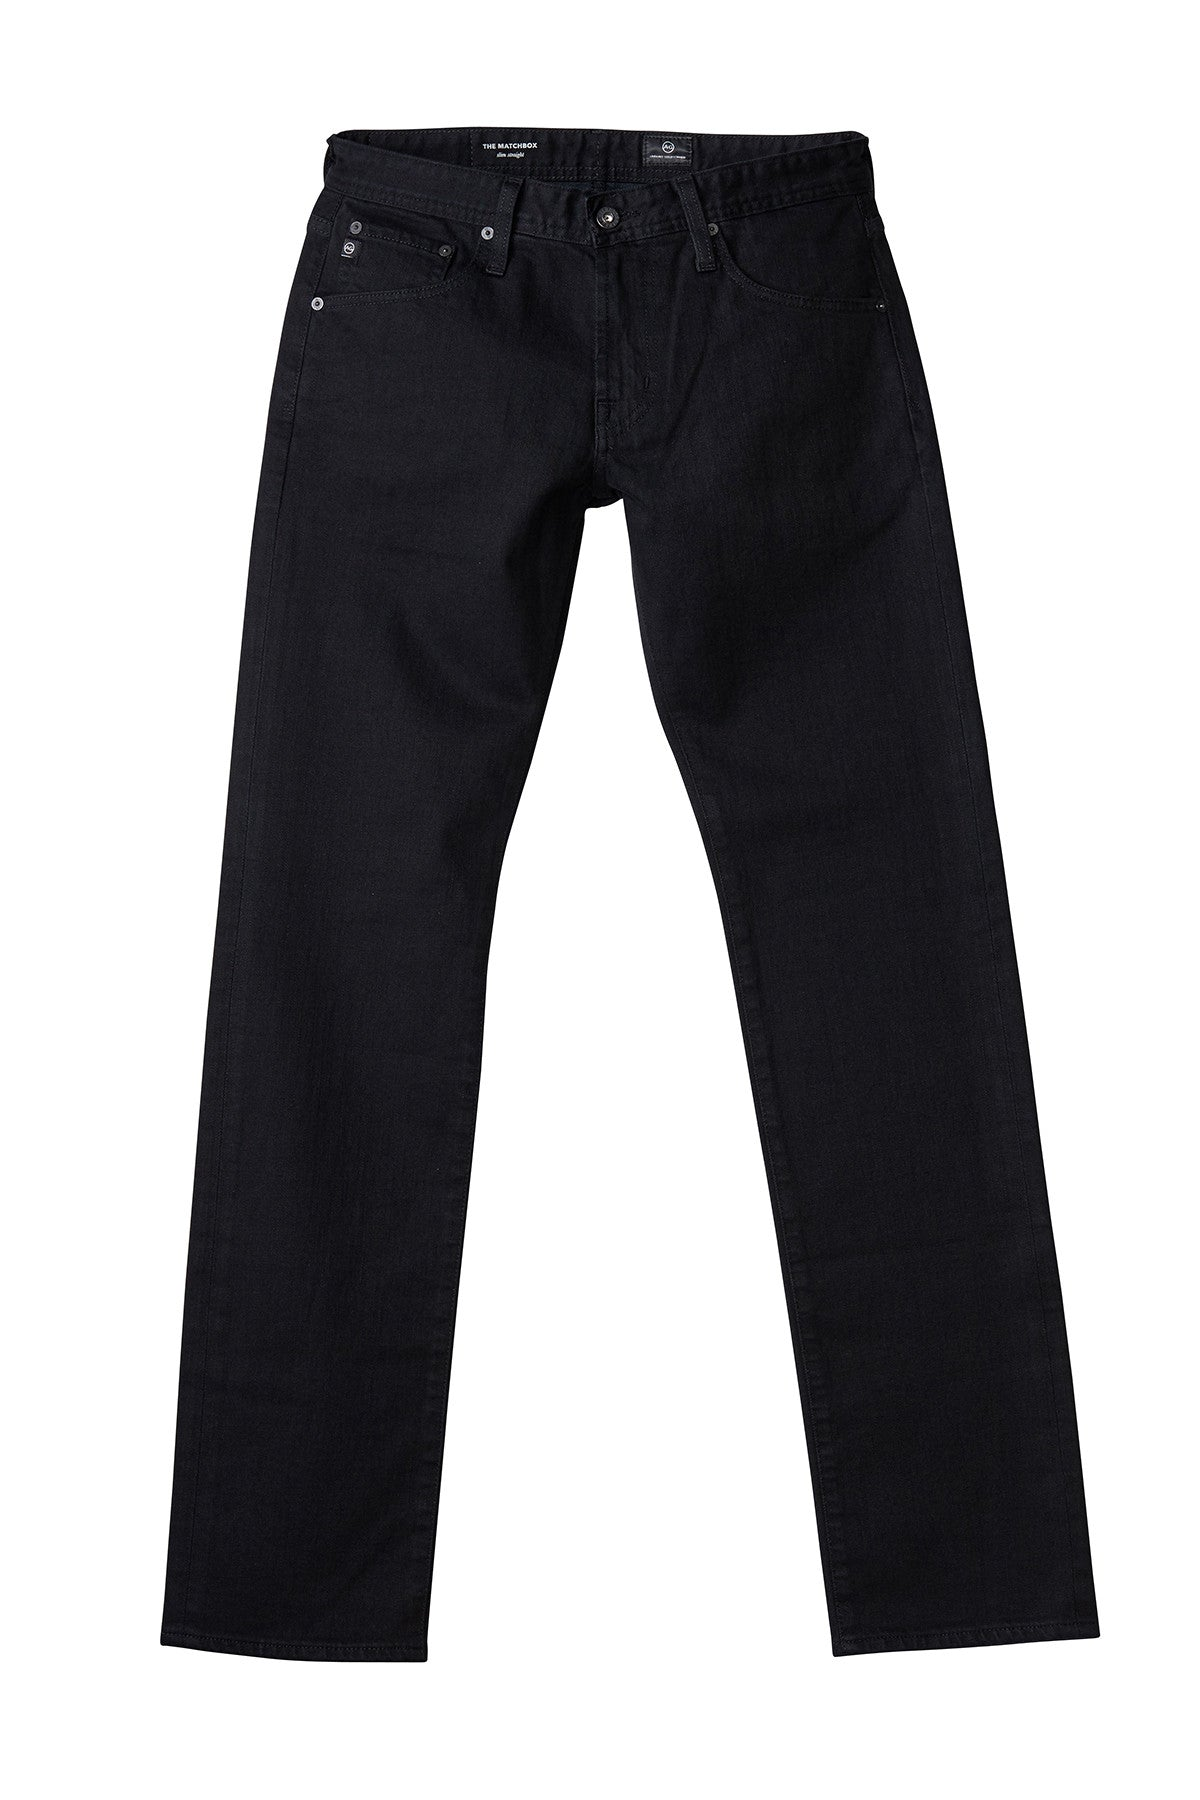 AG 'Matchbox' Slim Fit Black Jeans (Blackbird)